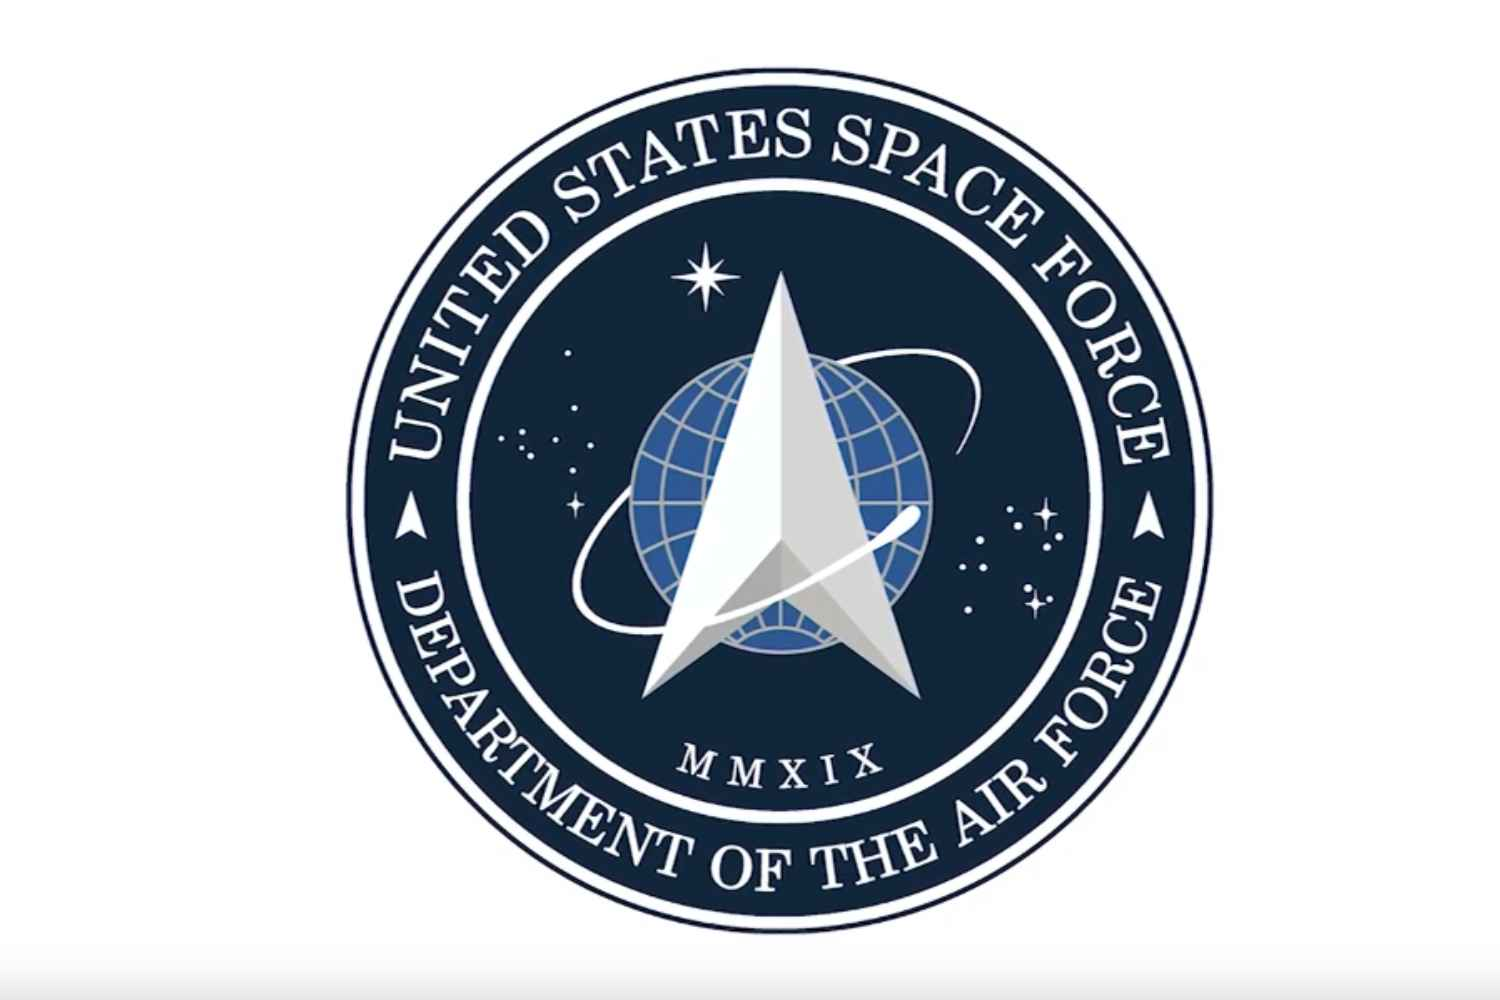 President Trump reveals logo for U.S. Space Force